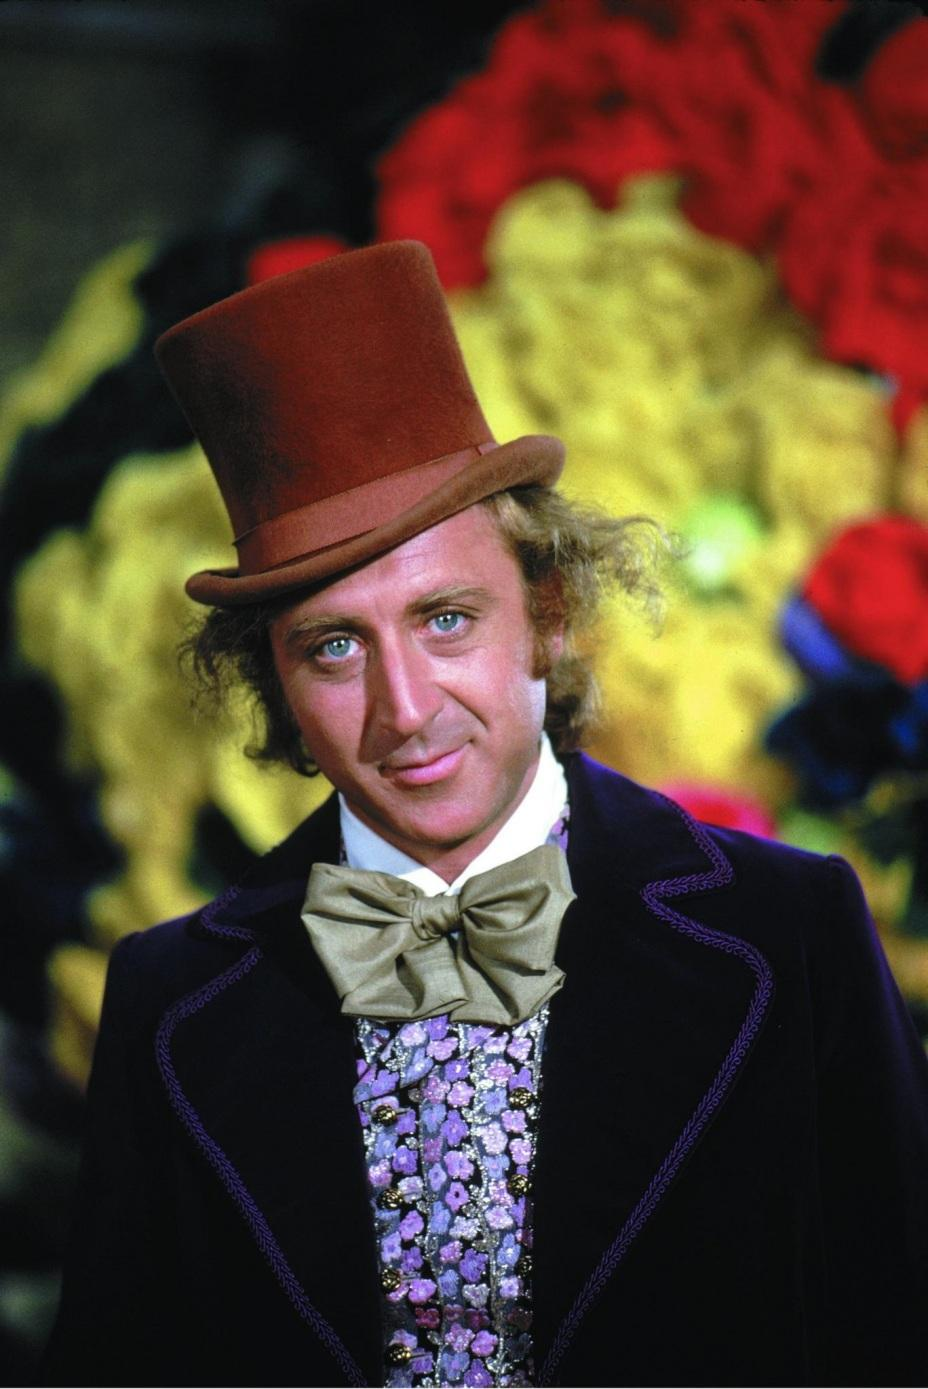 Willie Wonka Wallpaper